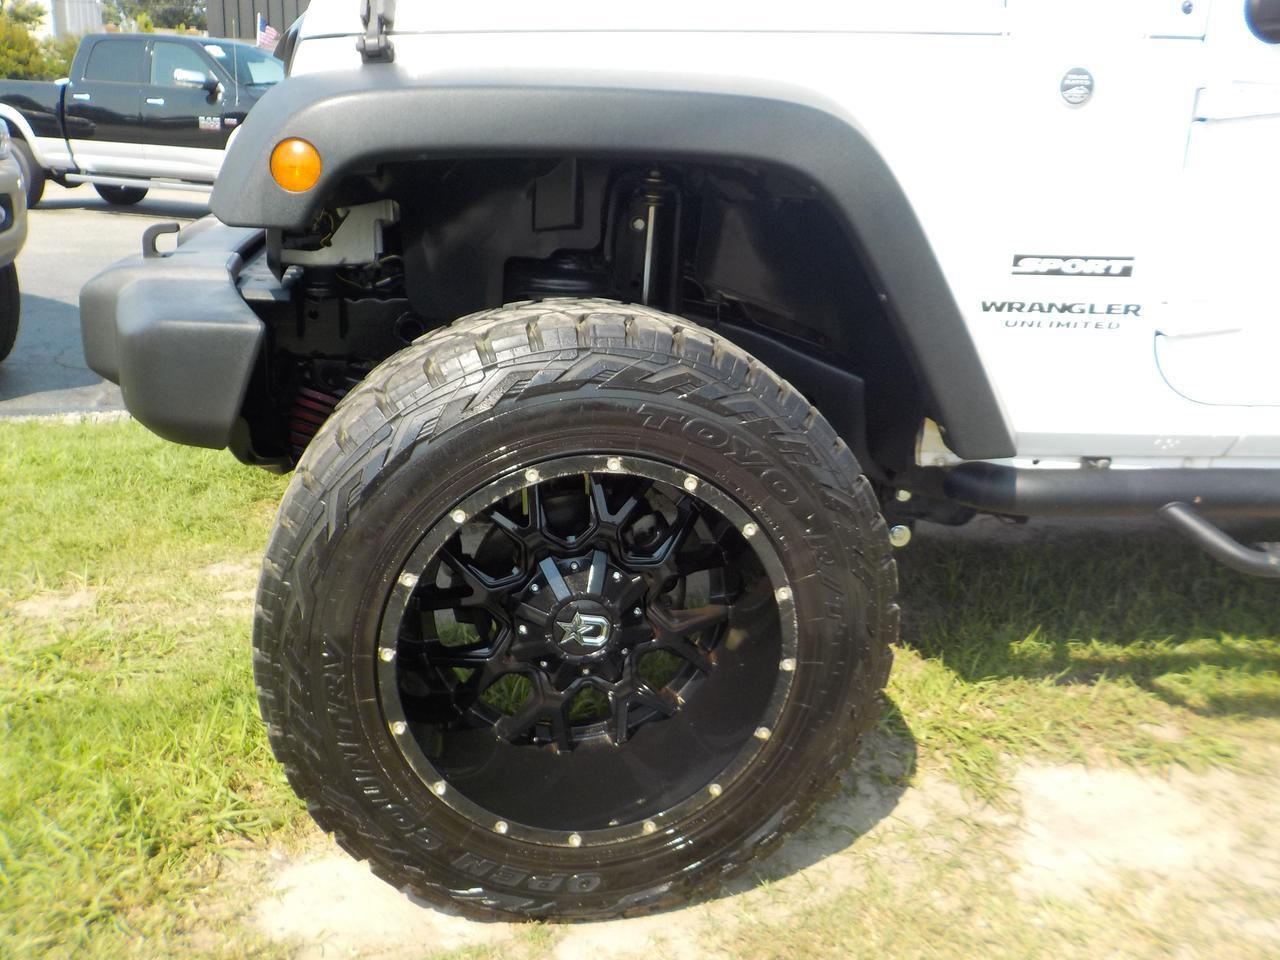 2017 JEEP WRANGLER UNLIMITED SPORT 4X4, HARD CONVERTIBLE TOP, BLUETOOTH WIRELESS, CUSTOM RIMS, TOW PACKAGE & HITCH!! Virginia Beach VA